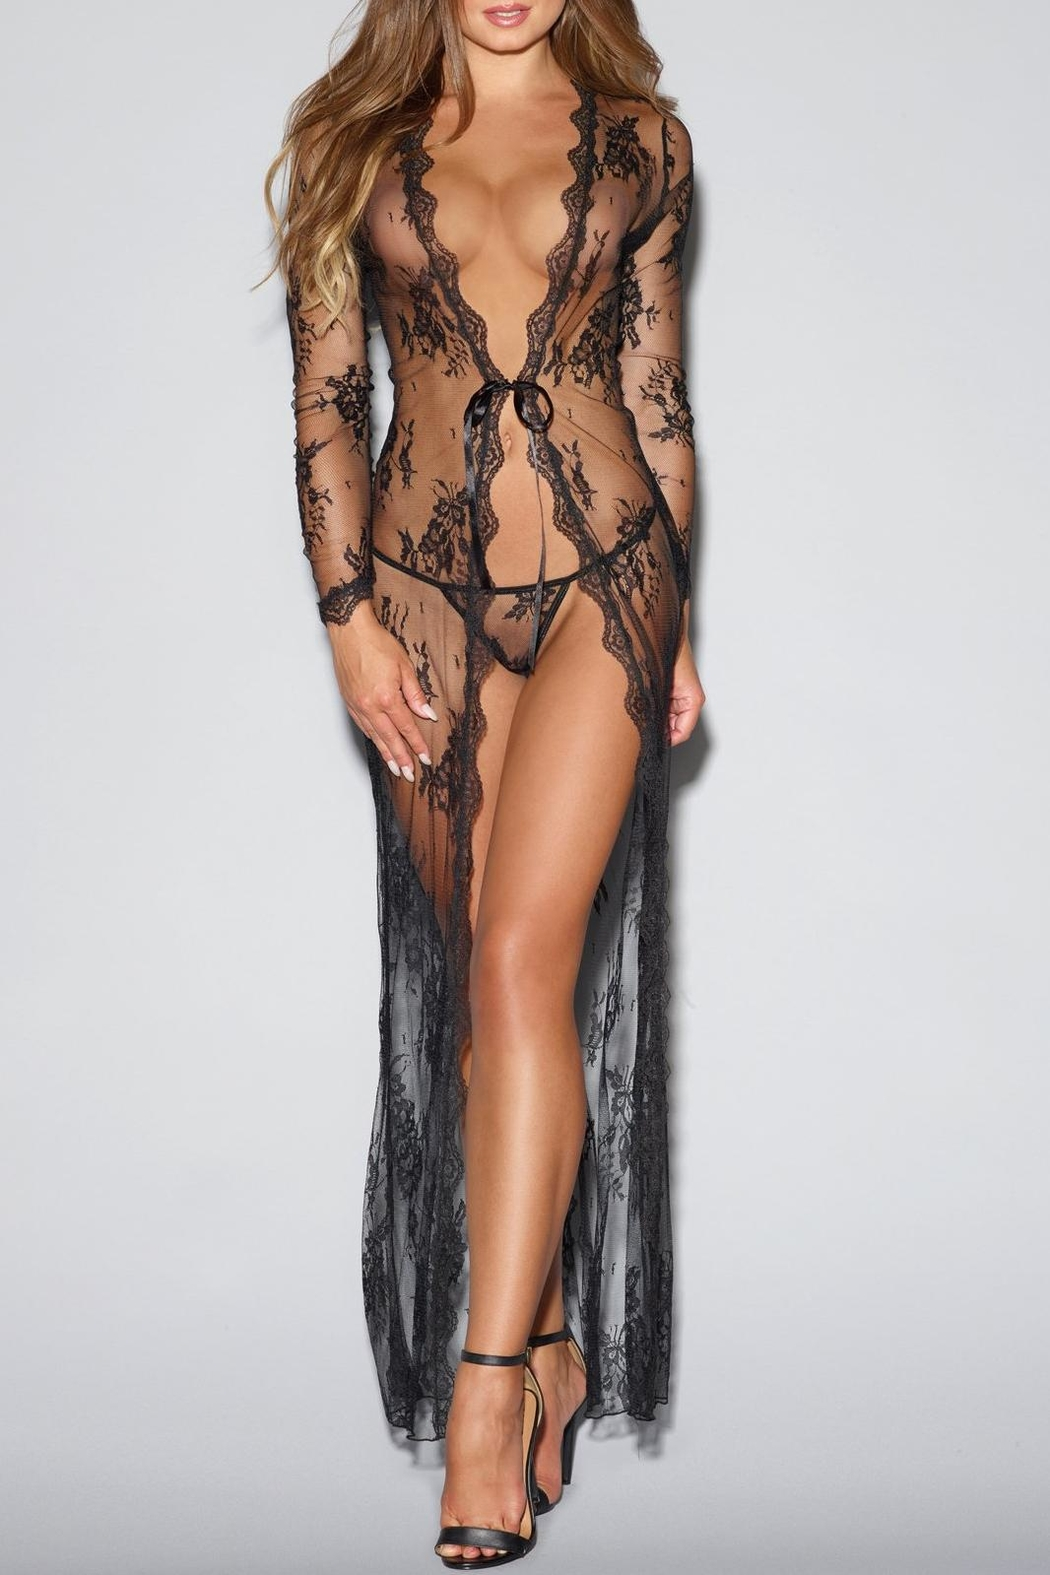 Dreamgirl Tie-Front Lace Robe - Main Image